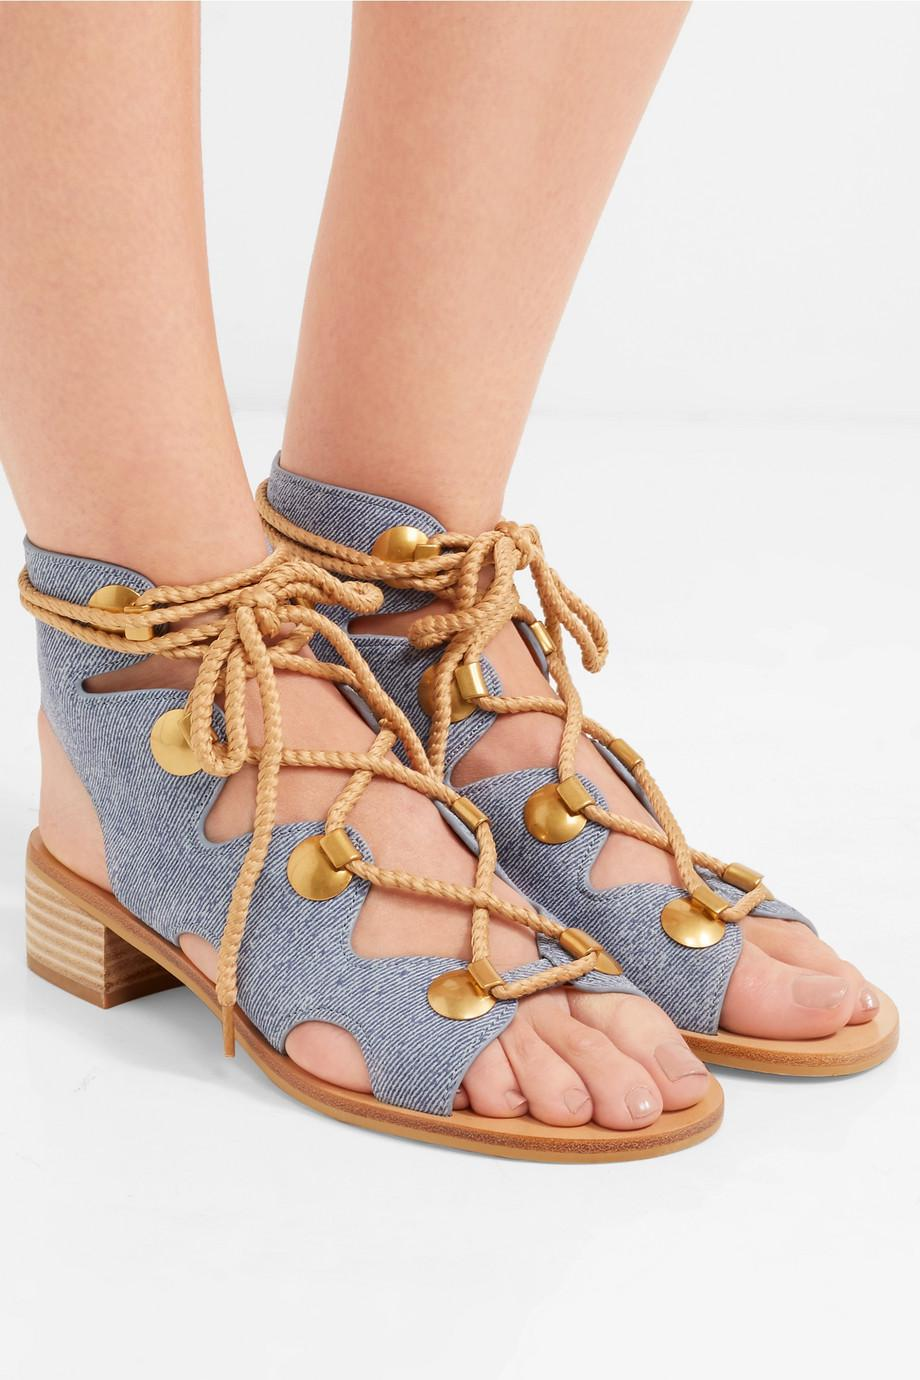 「See By Chloé Women's Denim Lace Up Sandals - Denim」的圖片搜尋結果